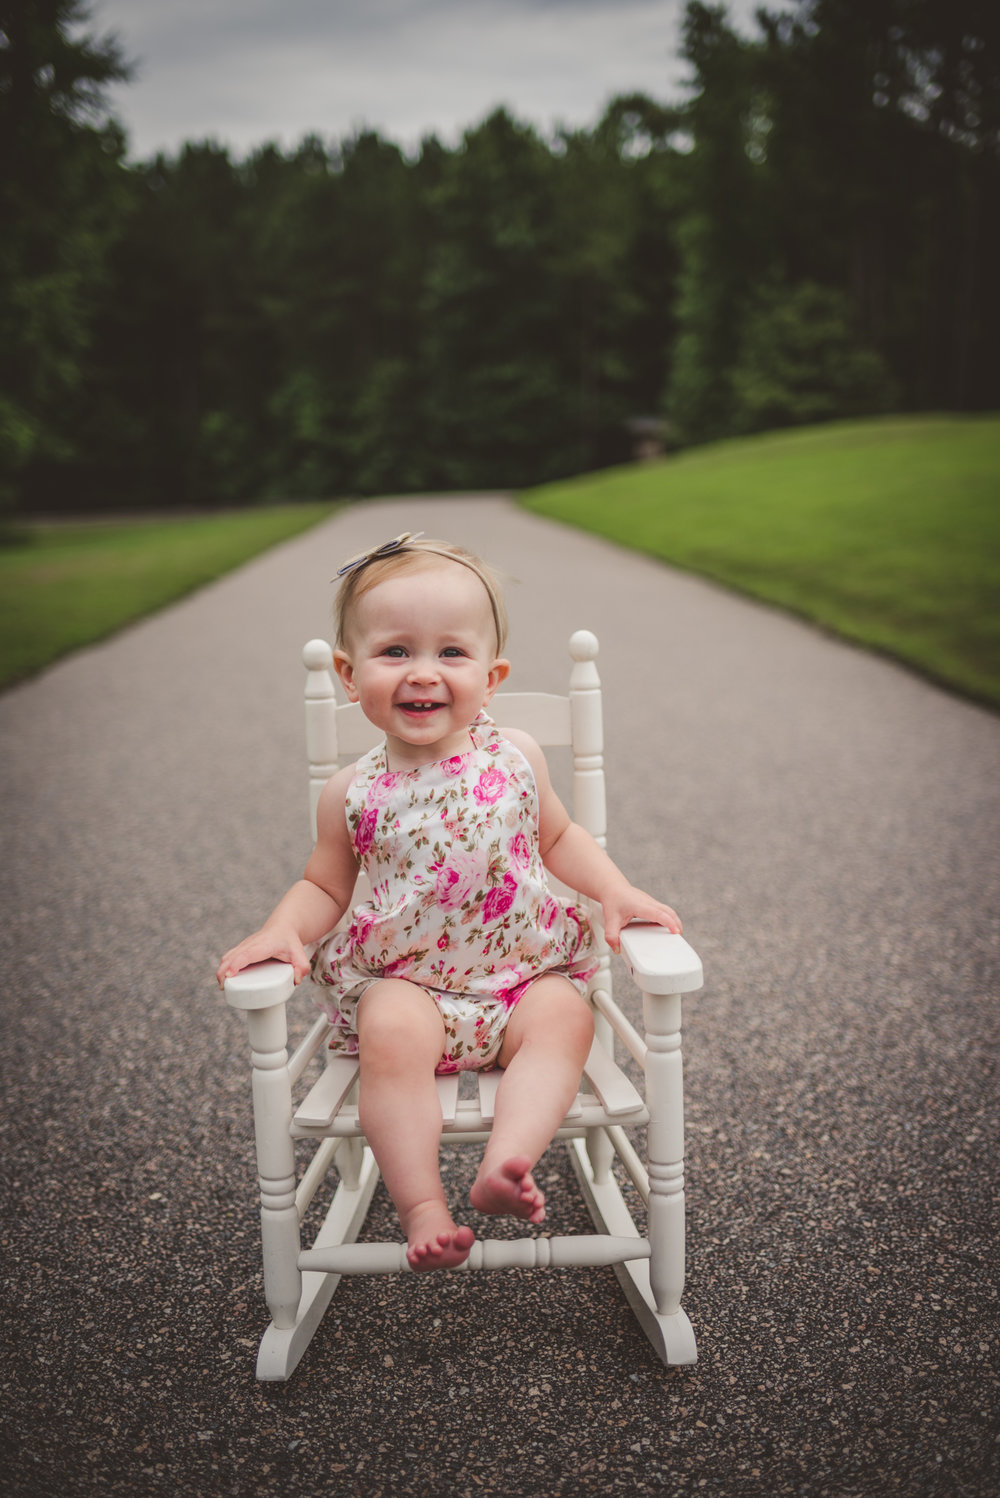 This little girl is smiling while sitting in an old rocking chair for her first birthday in Rolesville, North Carolina, image taken by Rose Trail Images.